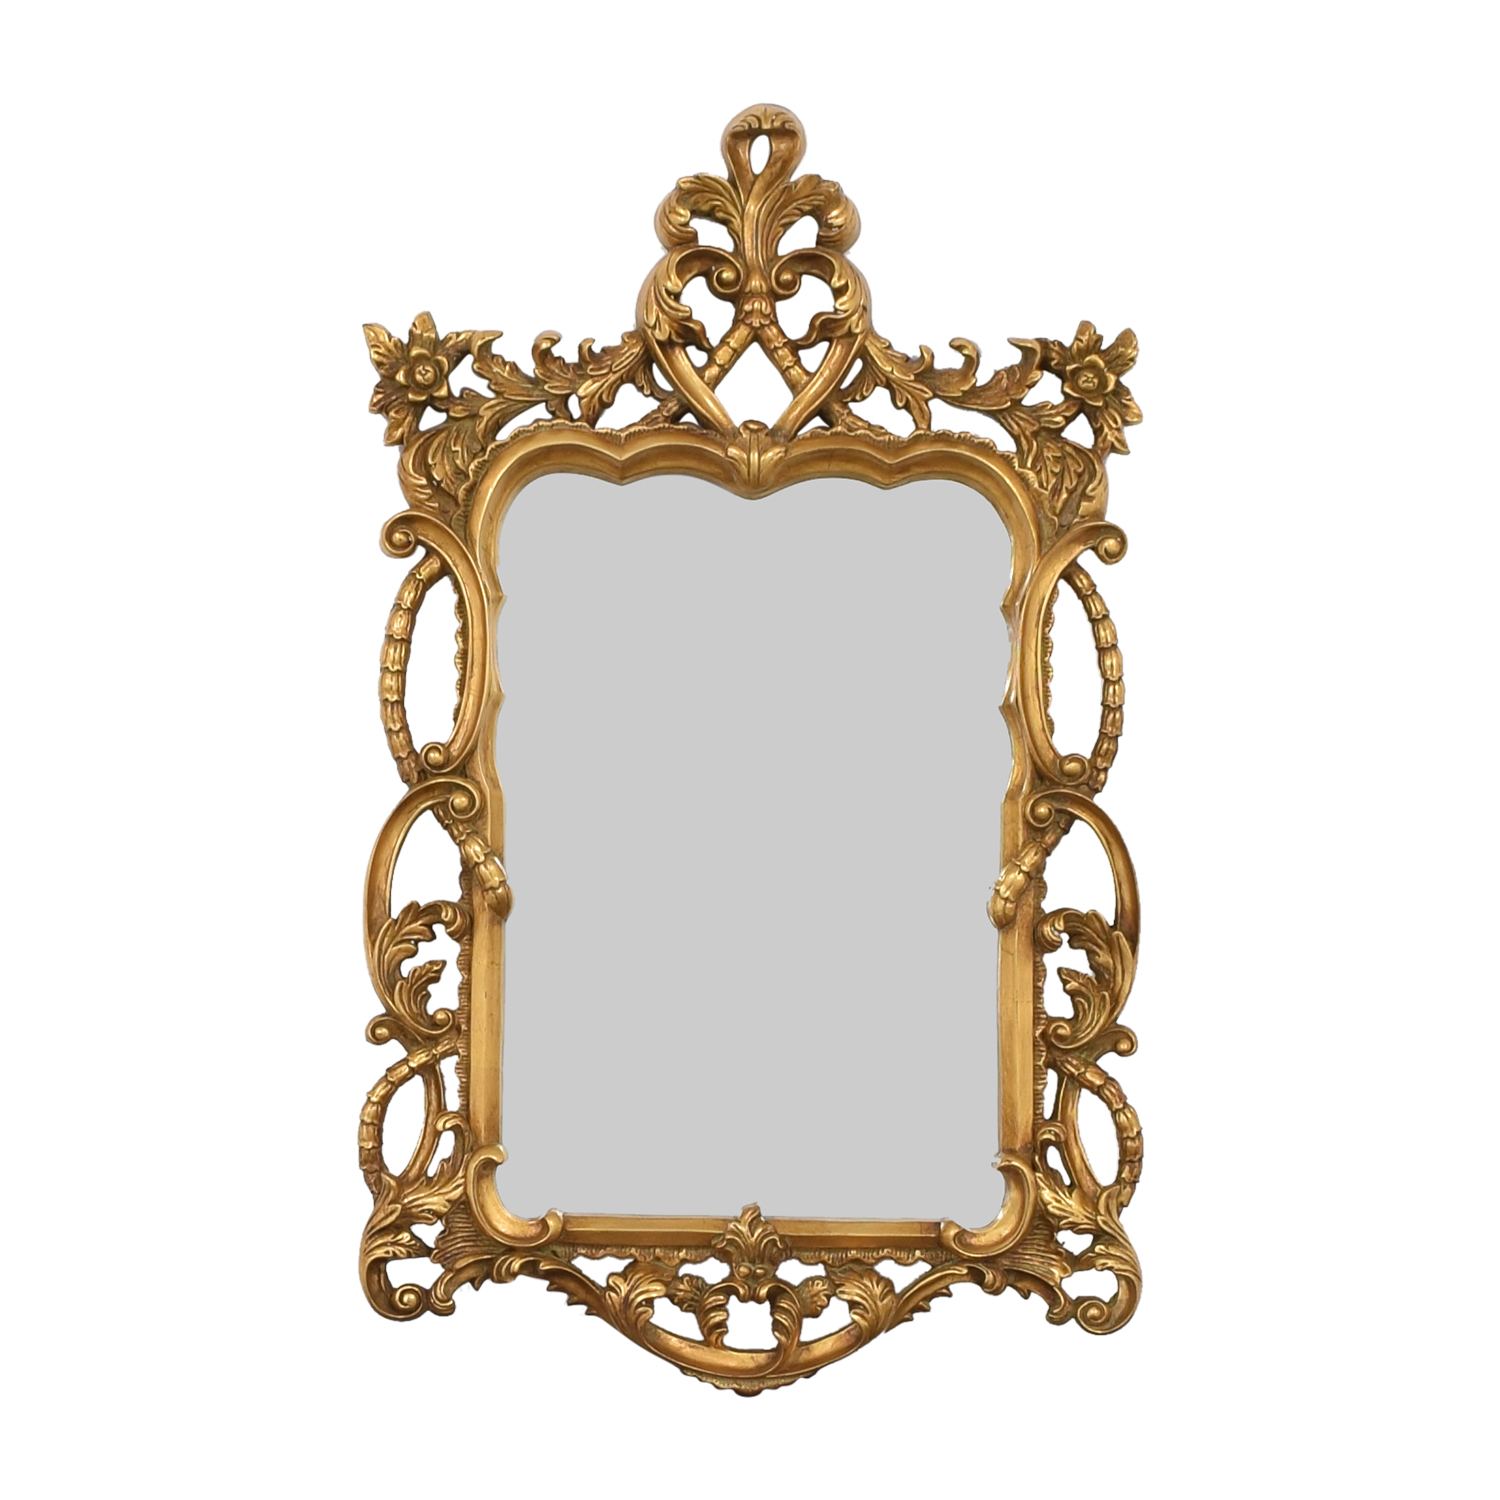 Horchow Sterling Industries Ornate Wall Mirror Horchow